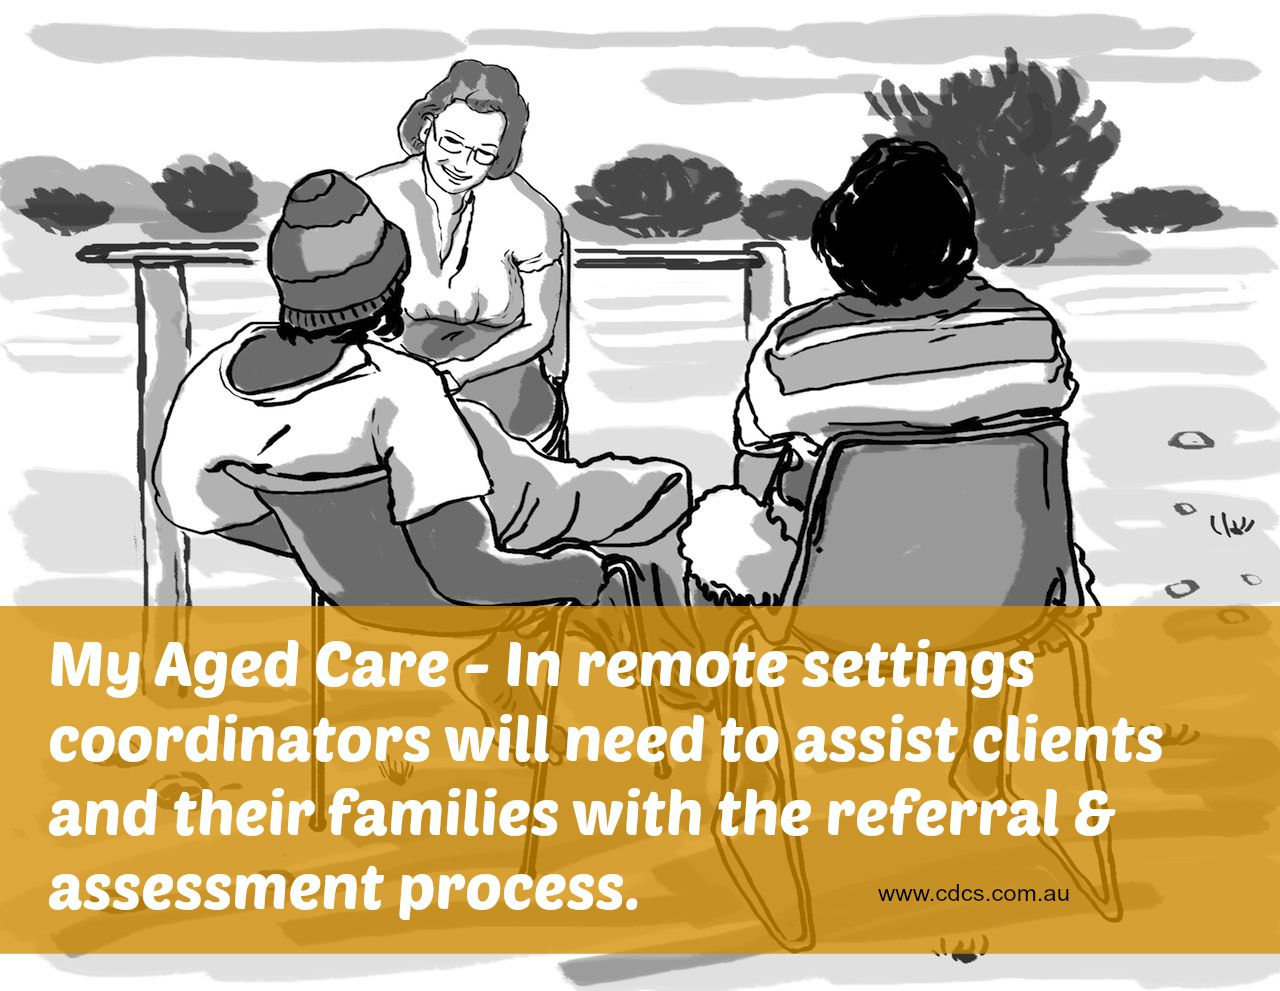 In remote settings the aged care coordinator will continue to be the main point of contact for clients wishing to access aged care services.